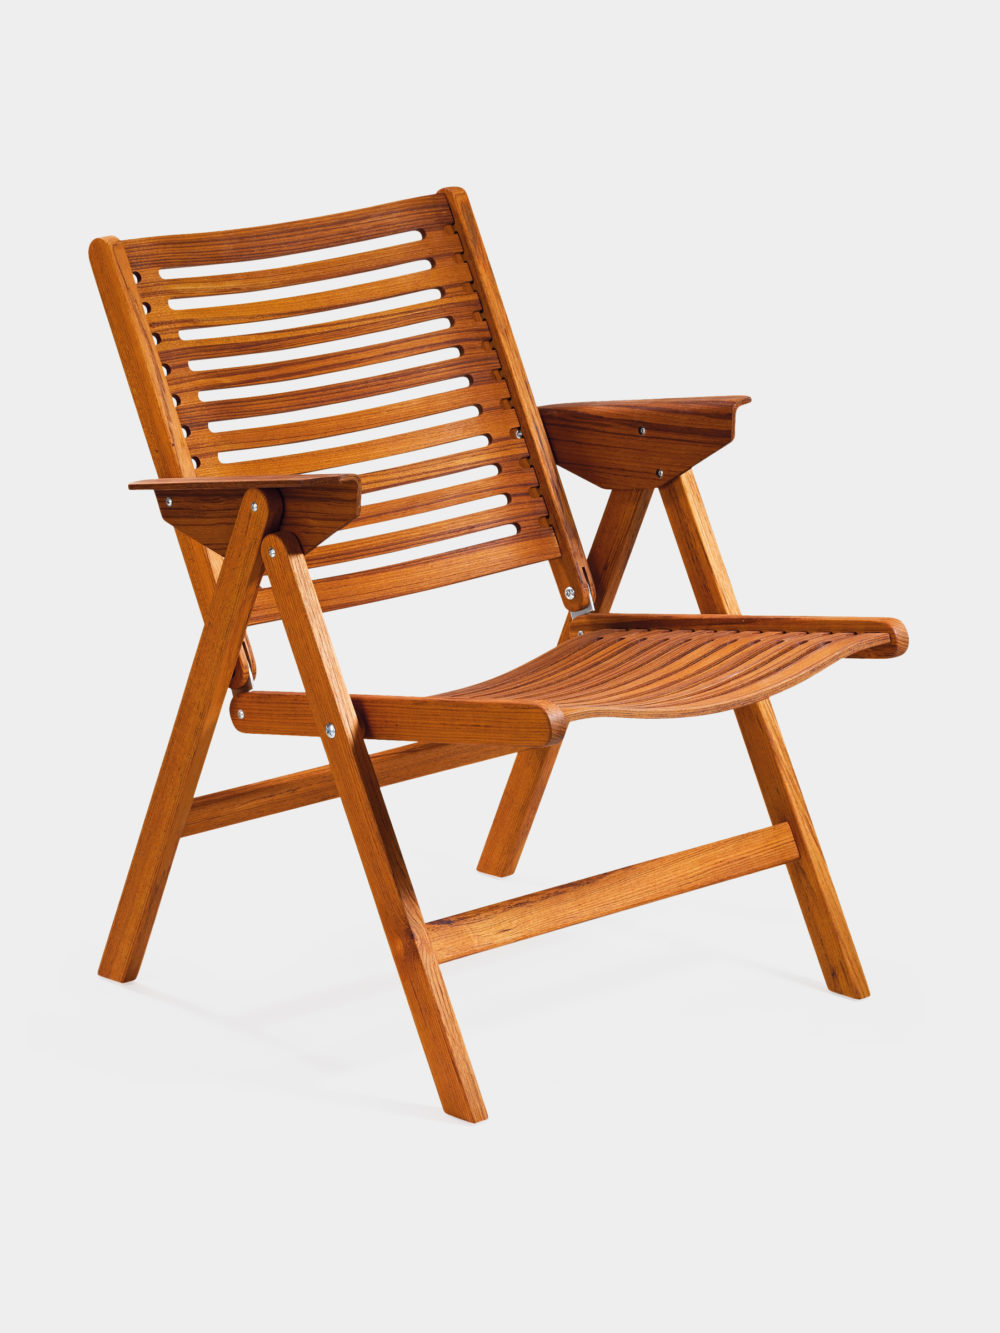 Rex_Kralj_Lounge_Chair teak